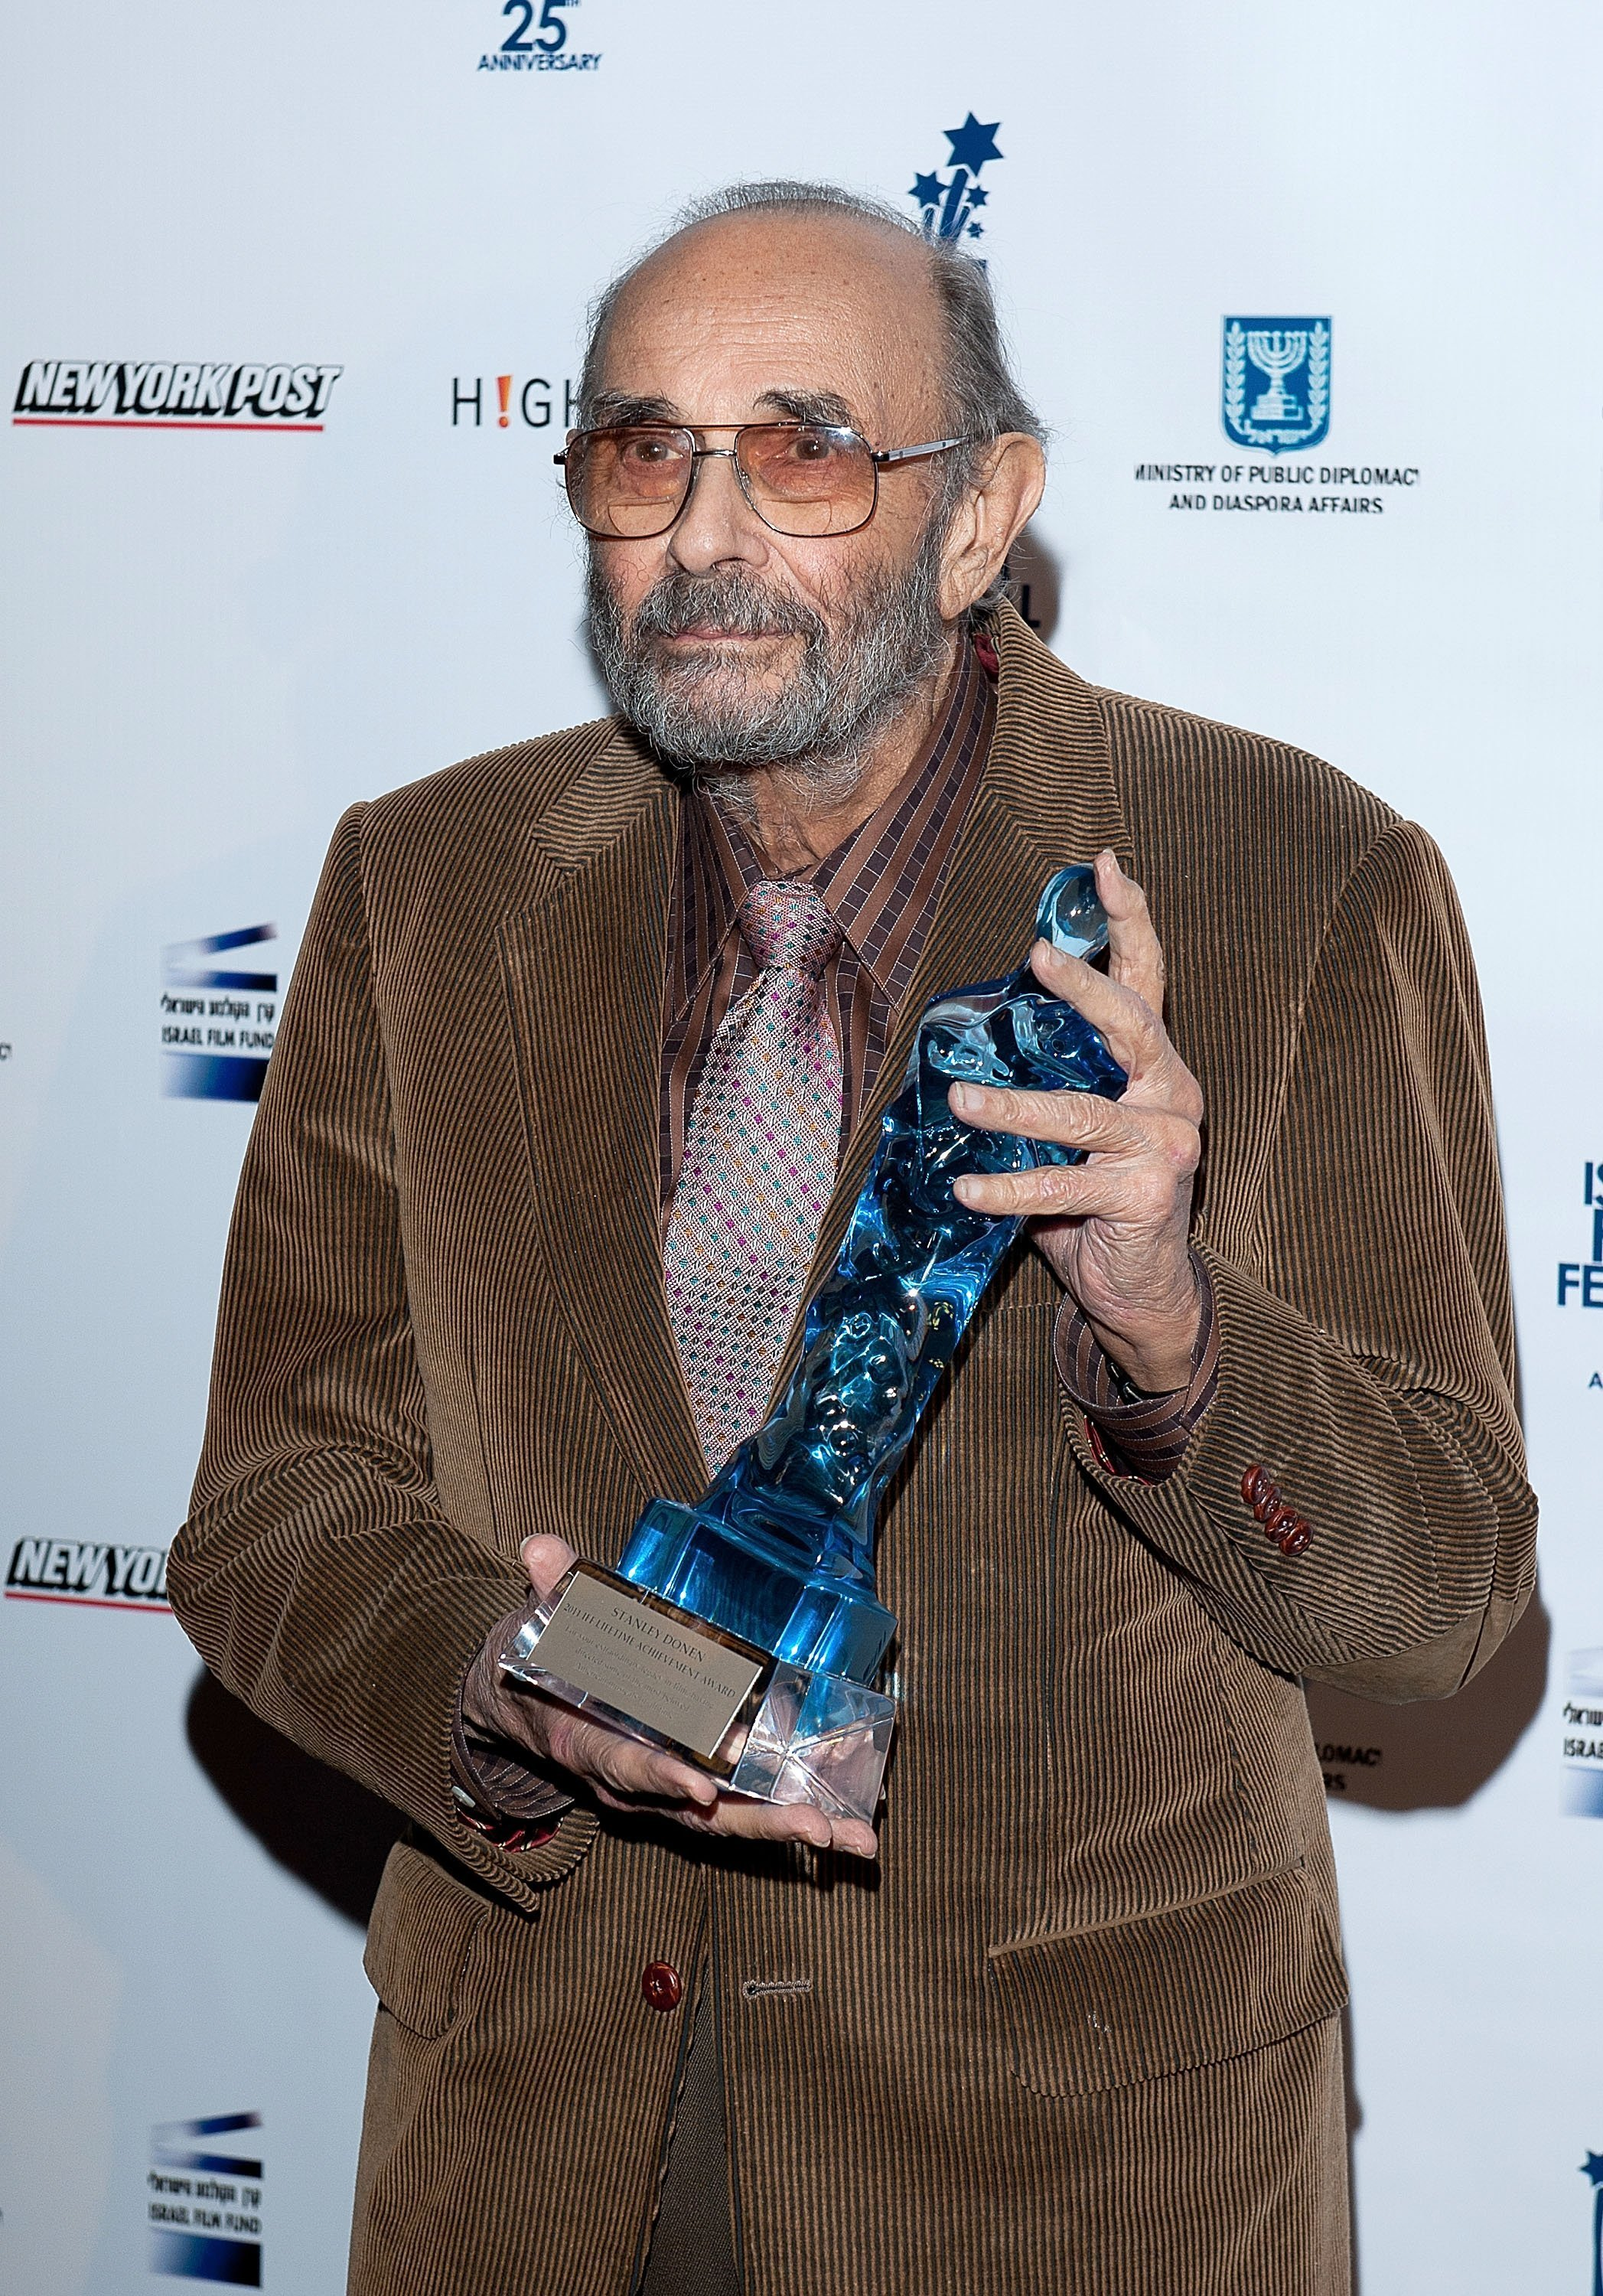 Stanley Donen at the 25th Israel Film Festival in New York City | Photo: Getty Images